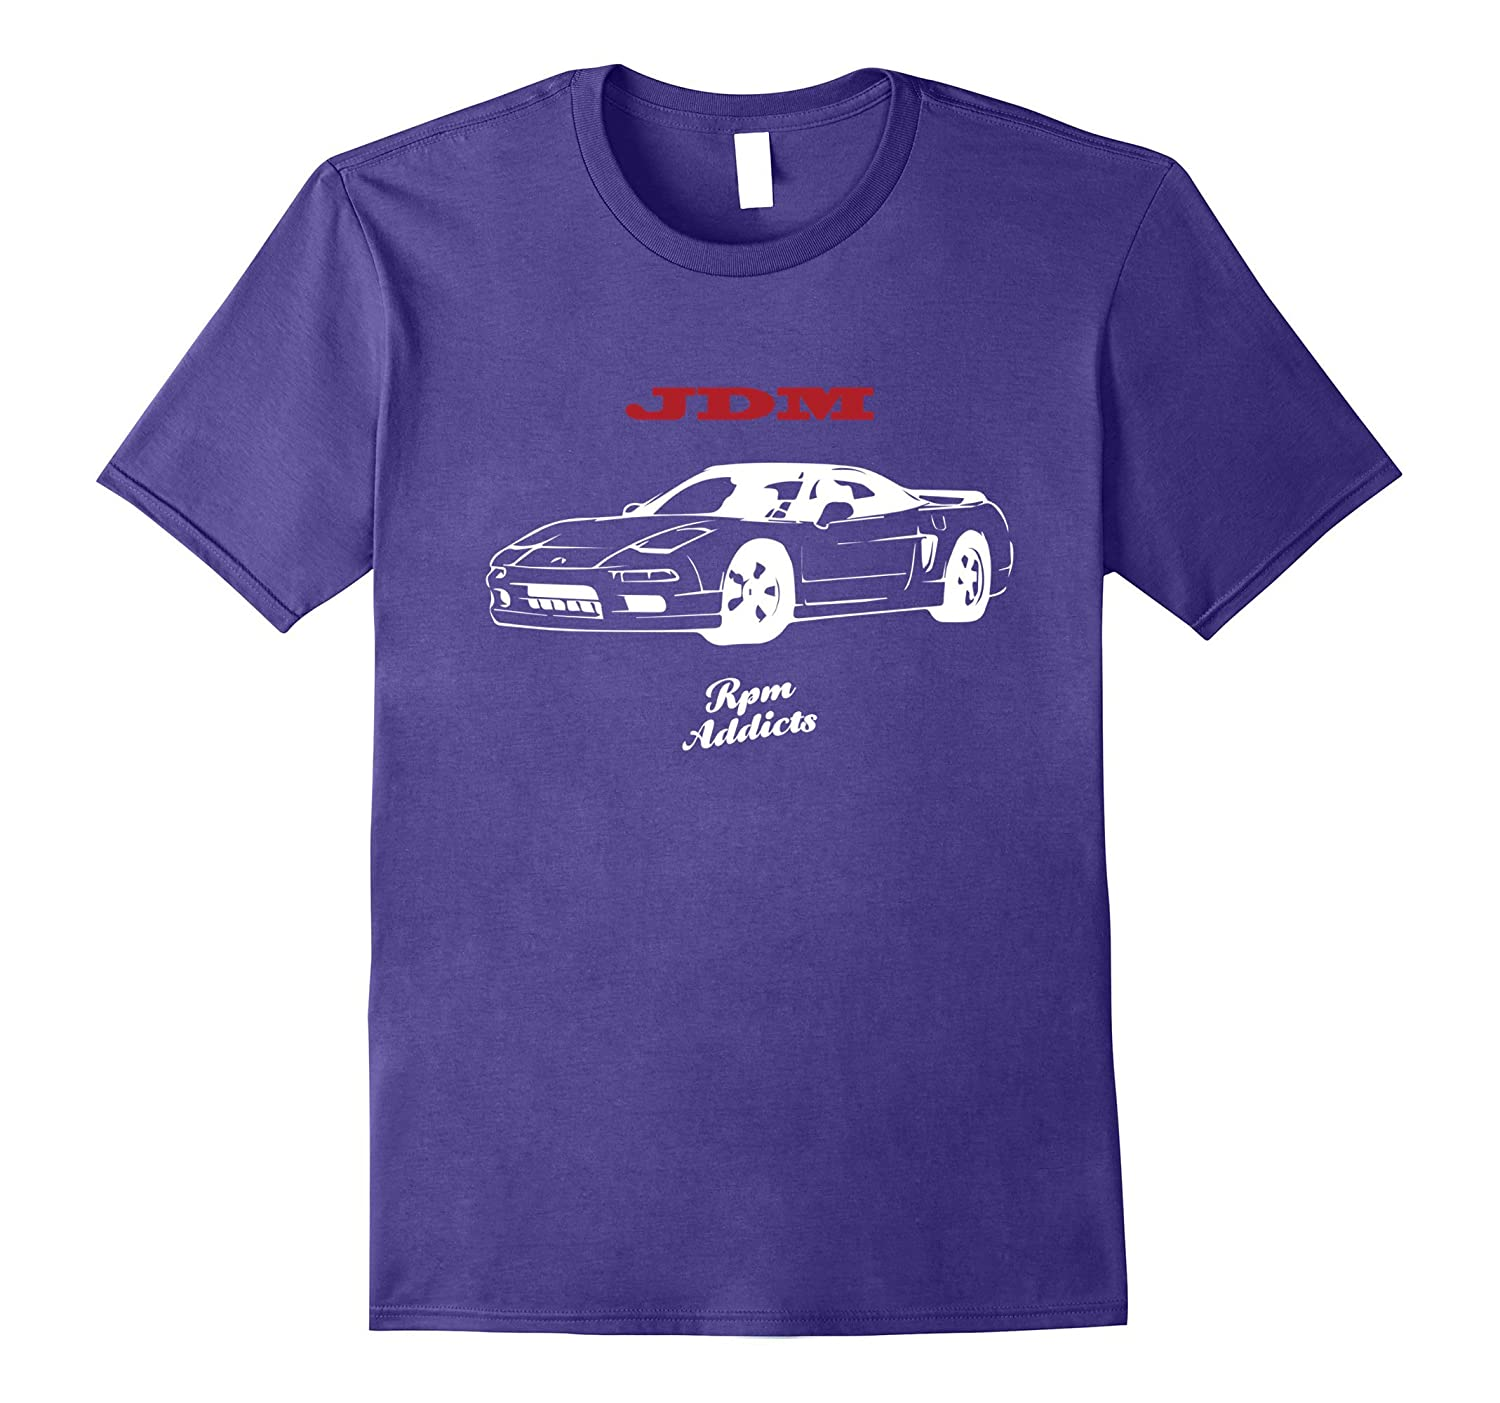 Awesome Classic JDM Car Shirt for Guys